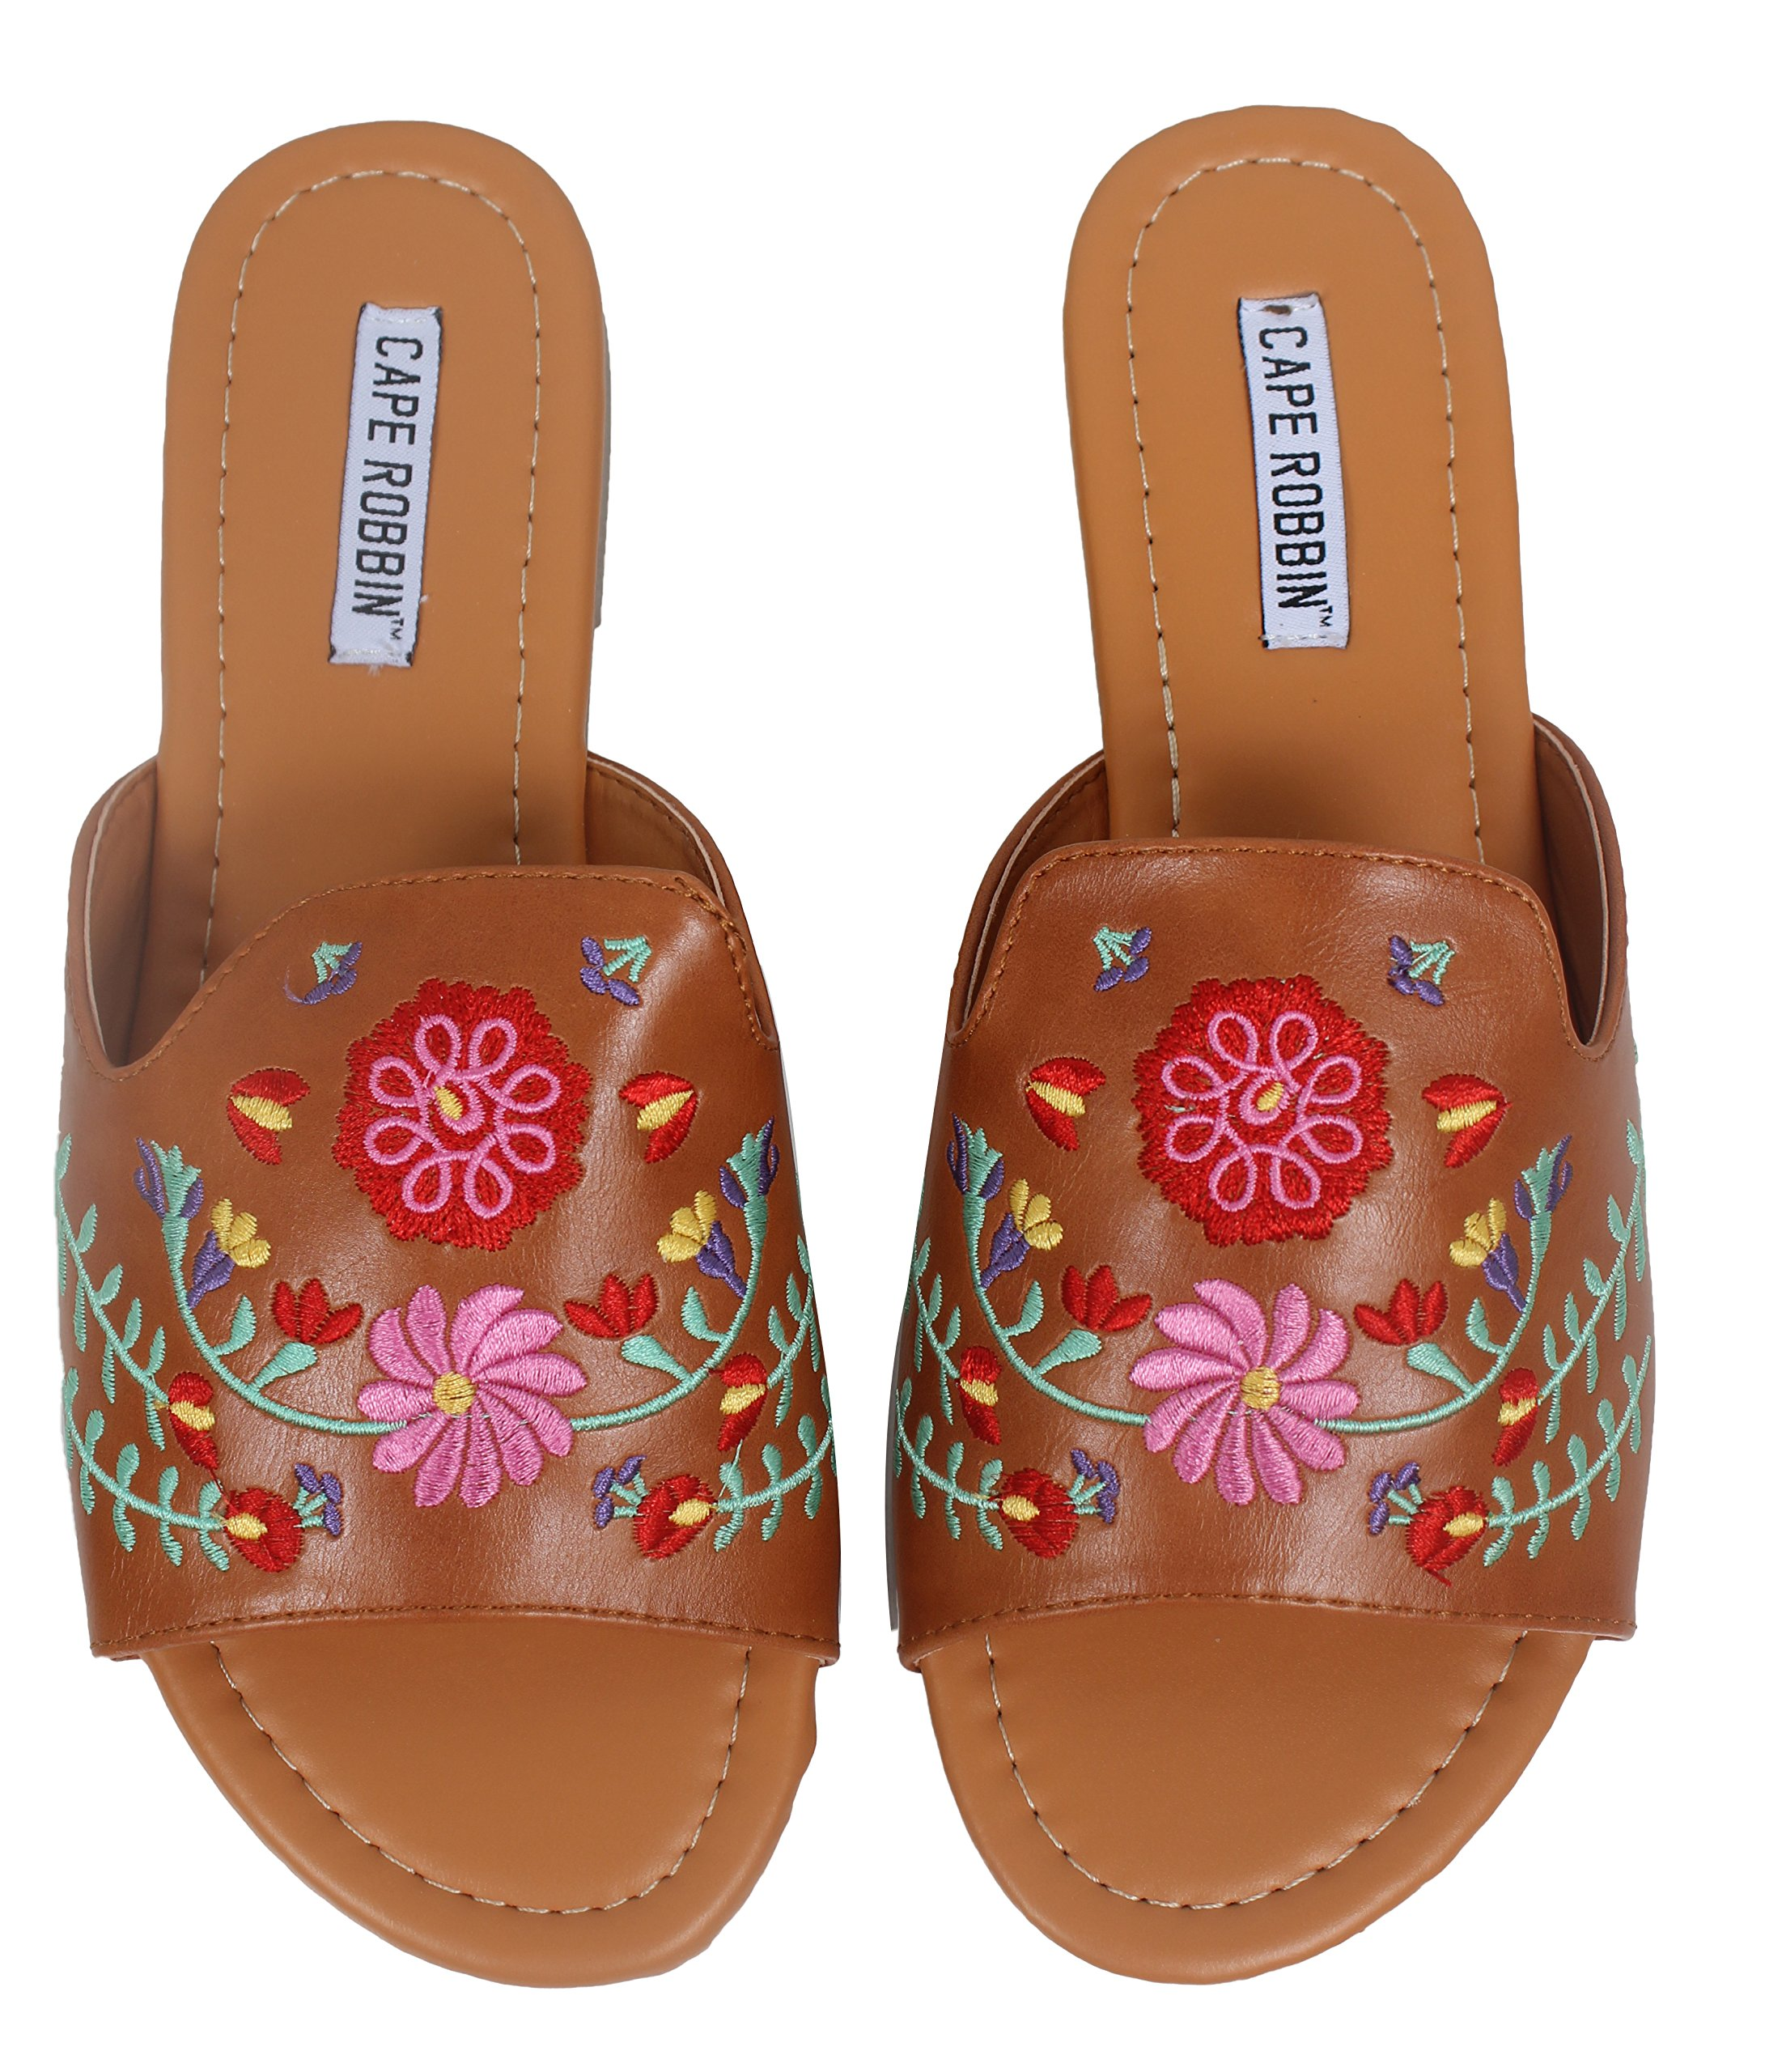 40f665f382c7 Cr Cape Robbin Women s Open Toe Faux Leather Flower Embroidered Slip On  Sandal (Camel